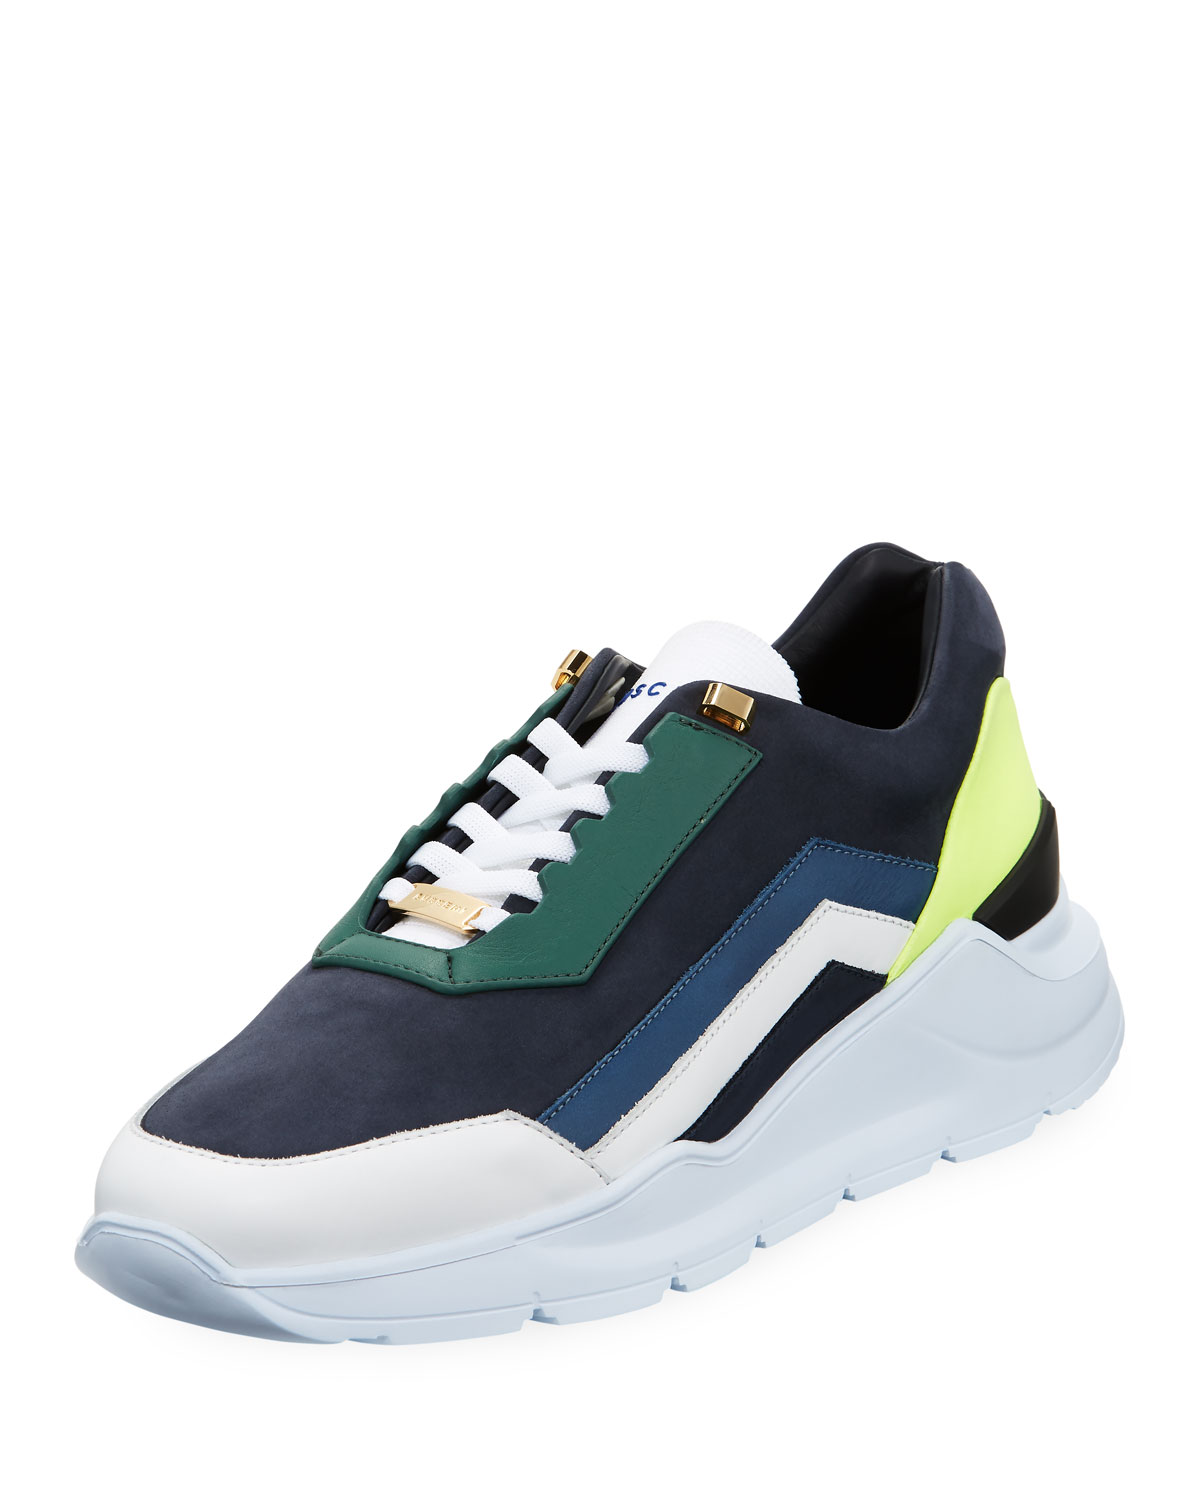 Strada Leather Running Sneakers